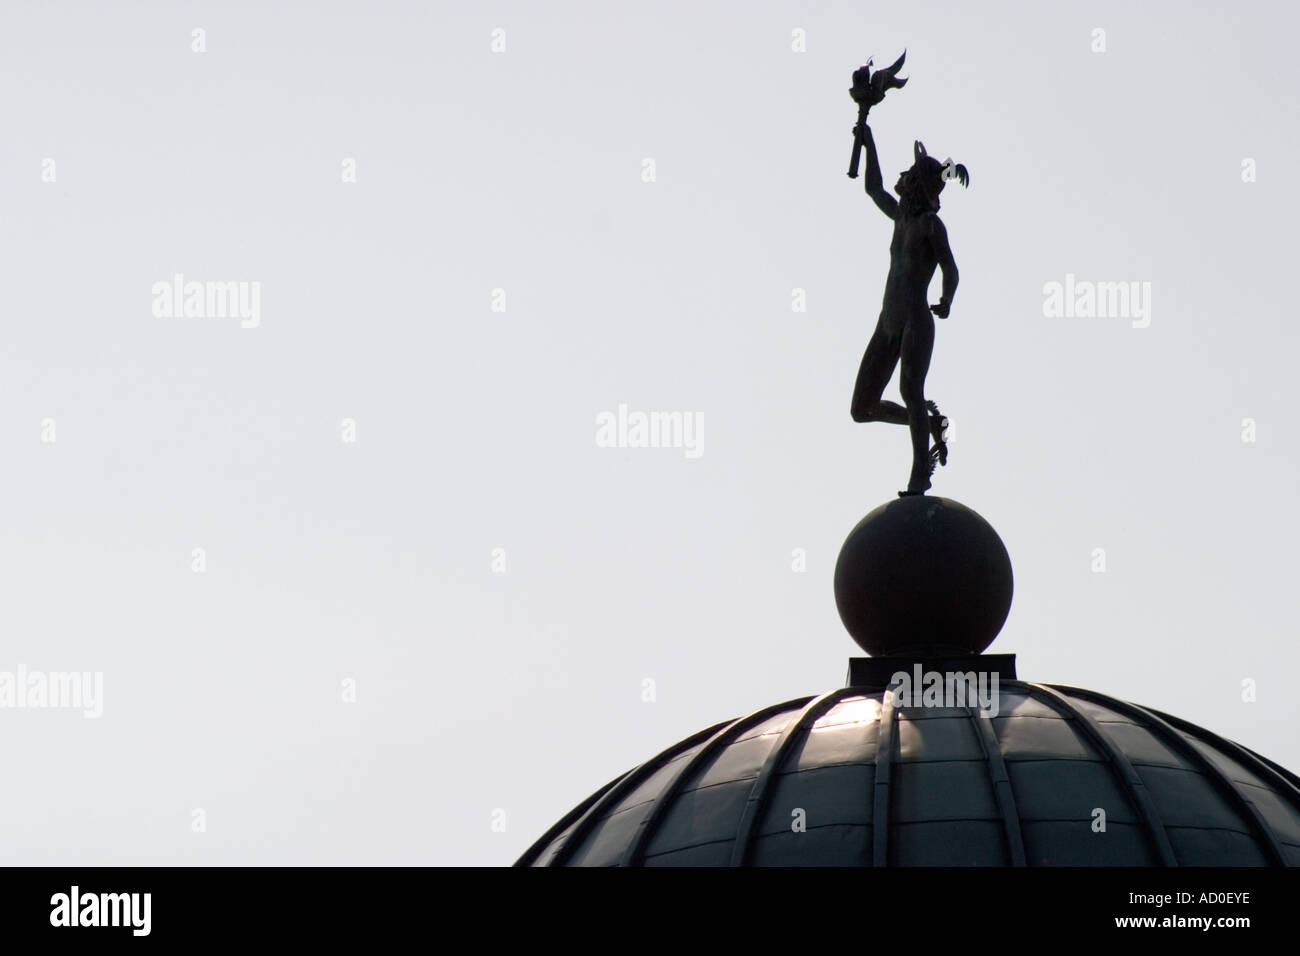 Statue of mercury on dome of lyceum theatre sheffield stock photo statue of mercury on dome of lyceum theatre sheffield biocorpaavc Gallery